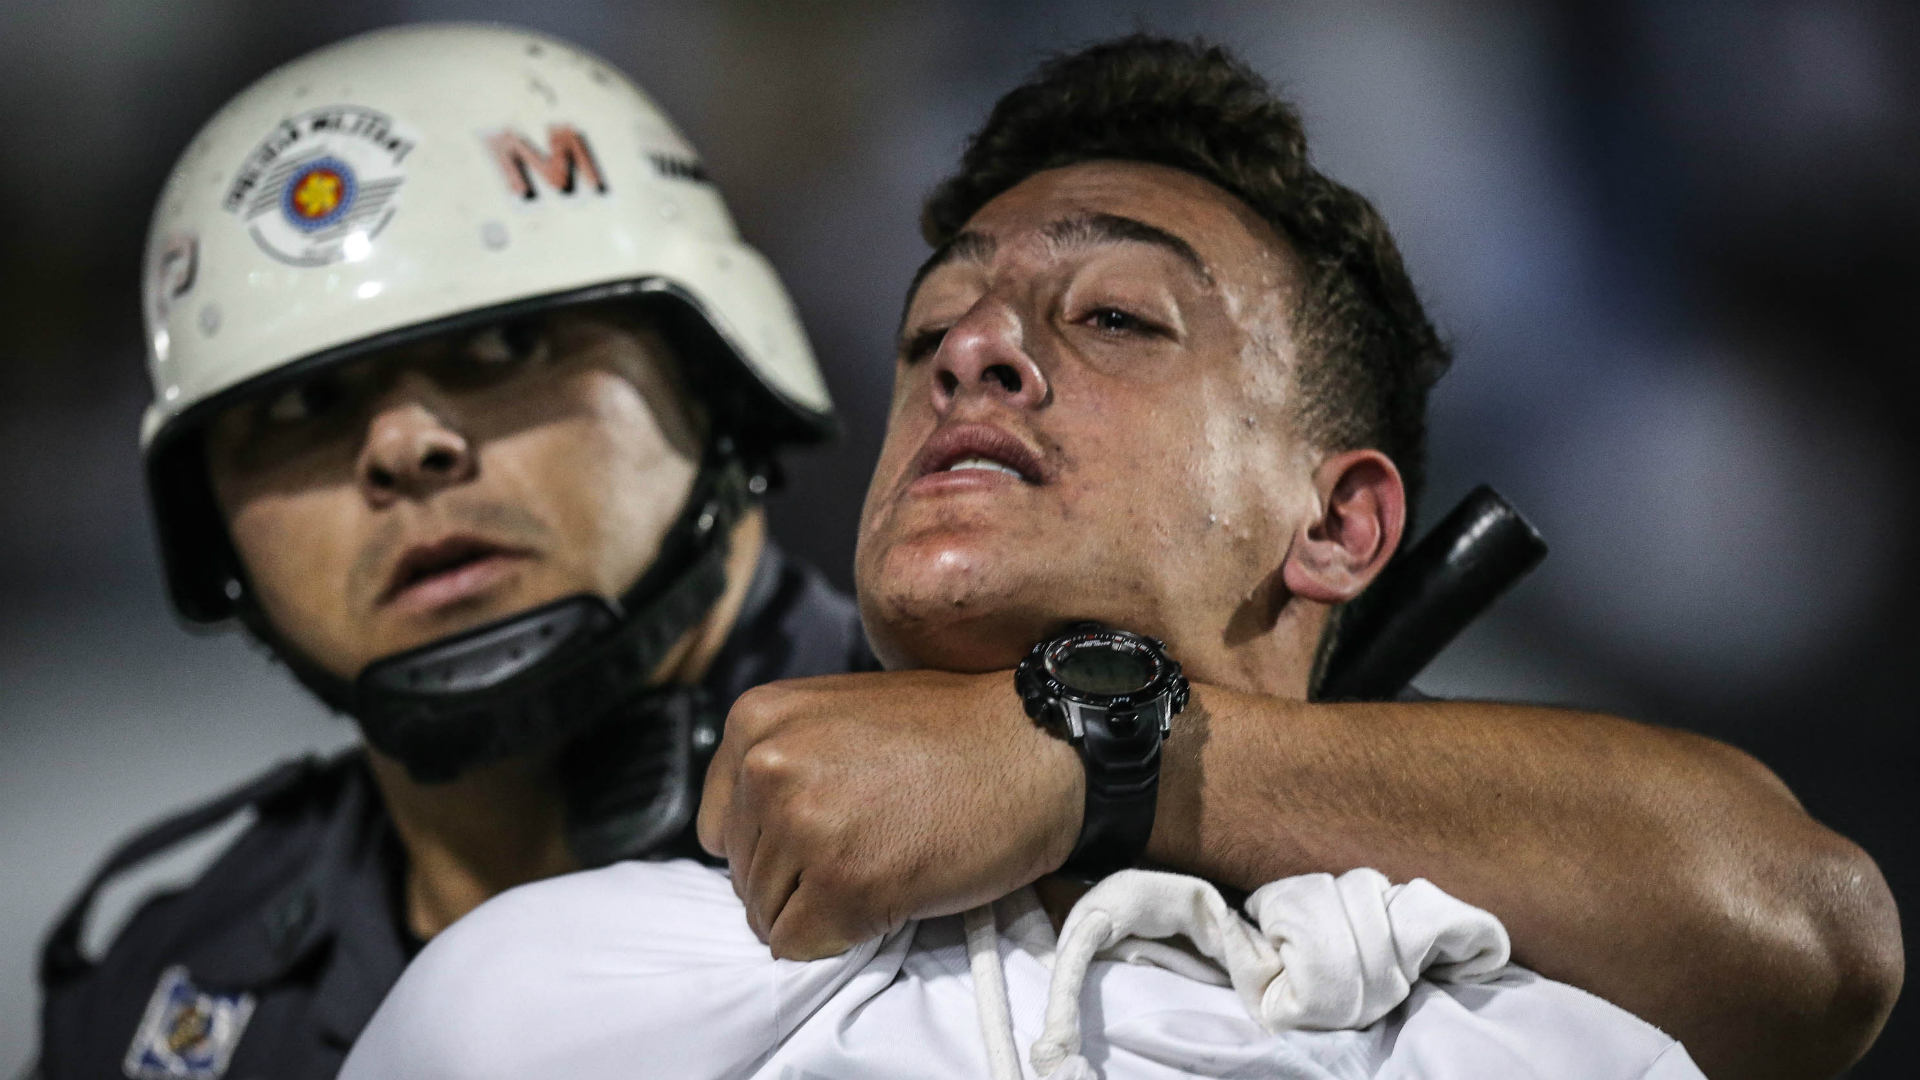 Copa Libertadores Review: Crowd trouble as Independiente advance after first-leg result overturned